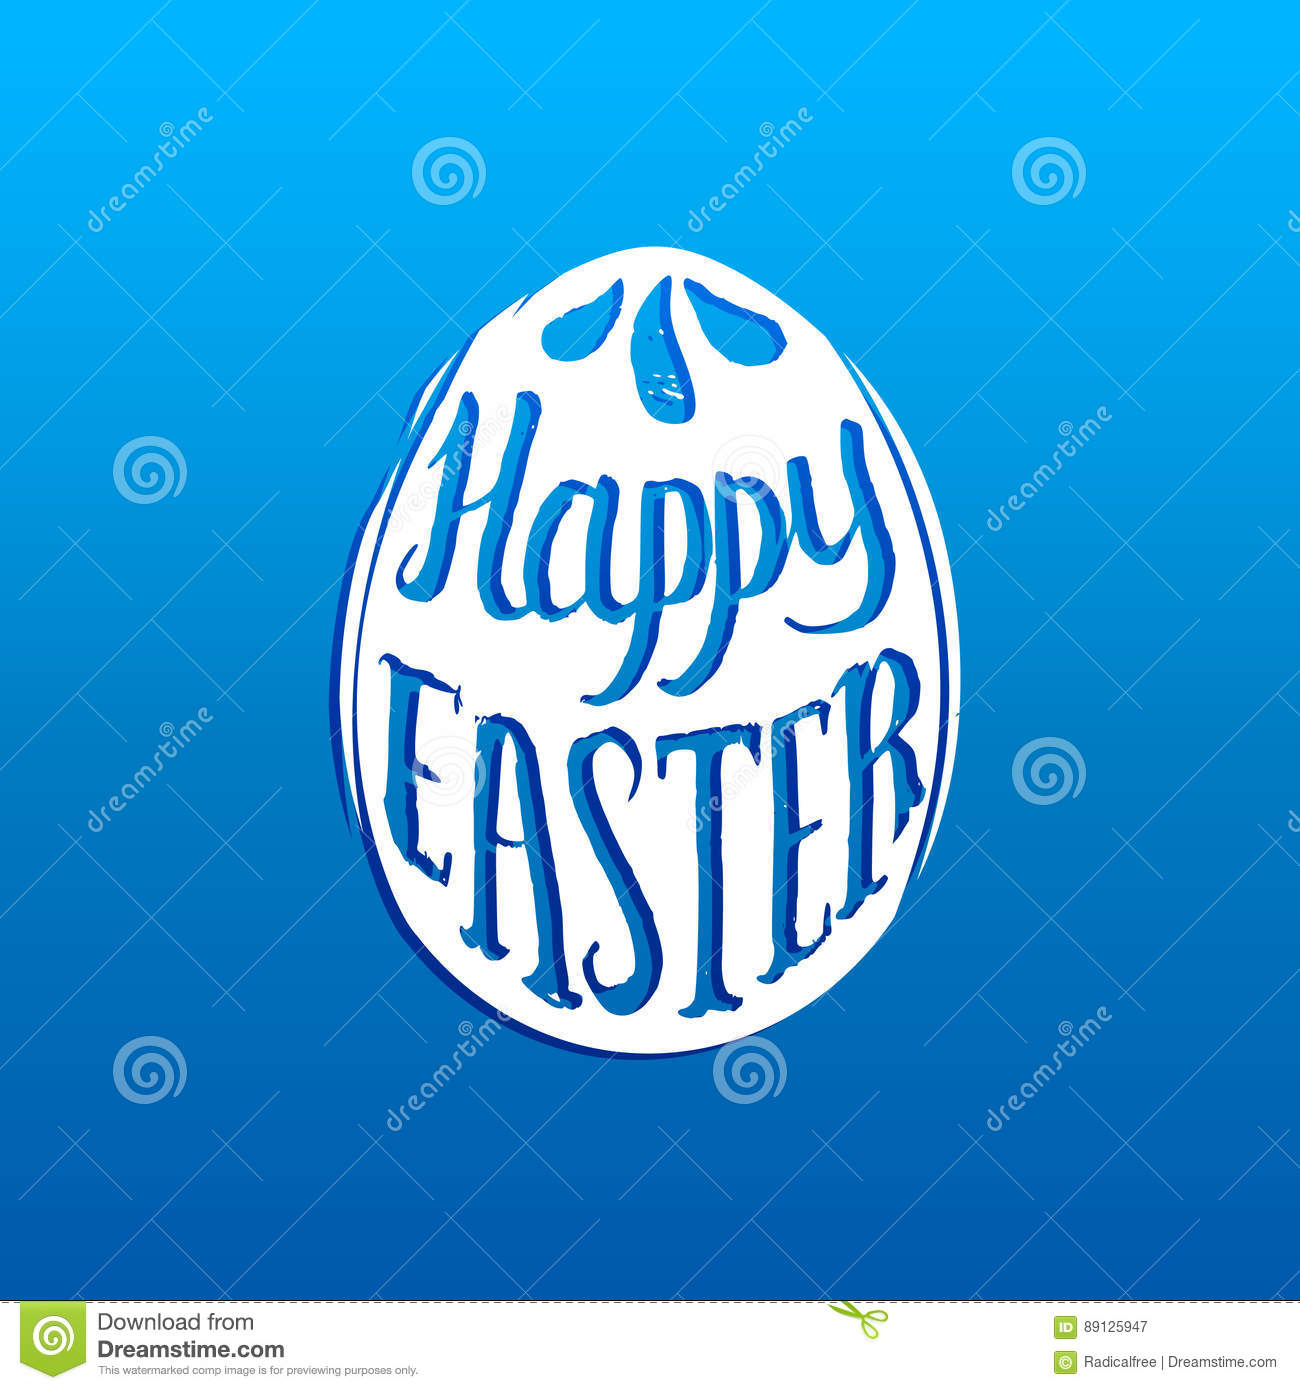 Happy easter greeting card with hand lettering in the egg shape happy easter greeting card with hand lettering in the egg shape religious holiday vector illustration m4hsunfo